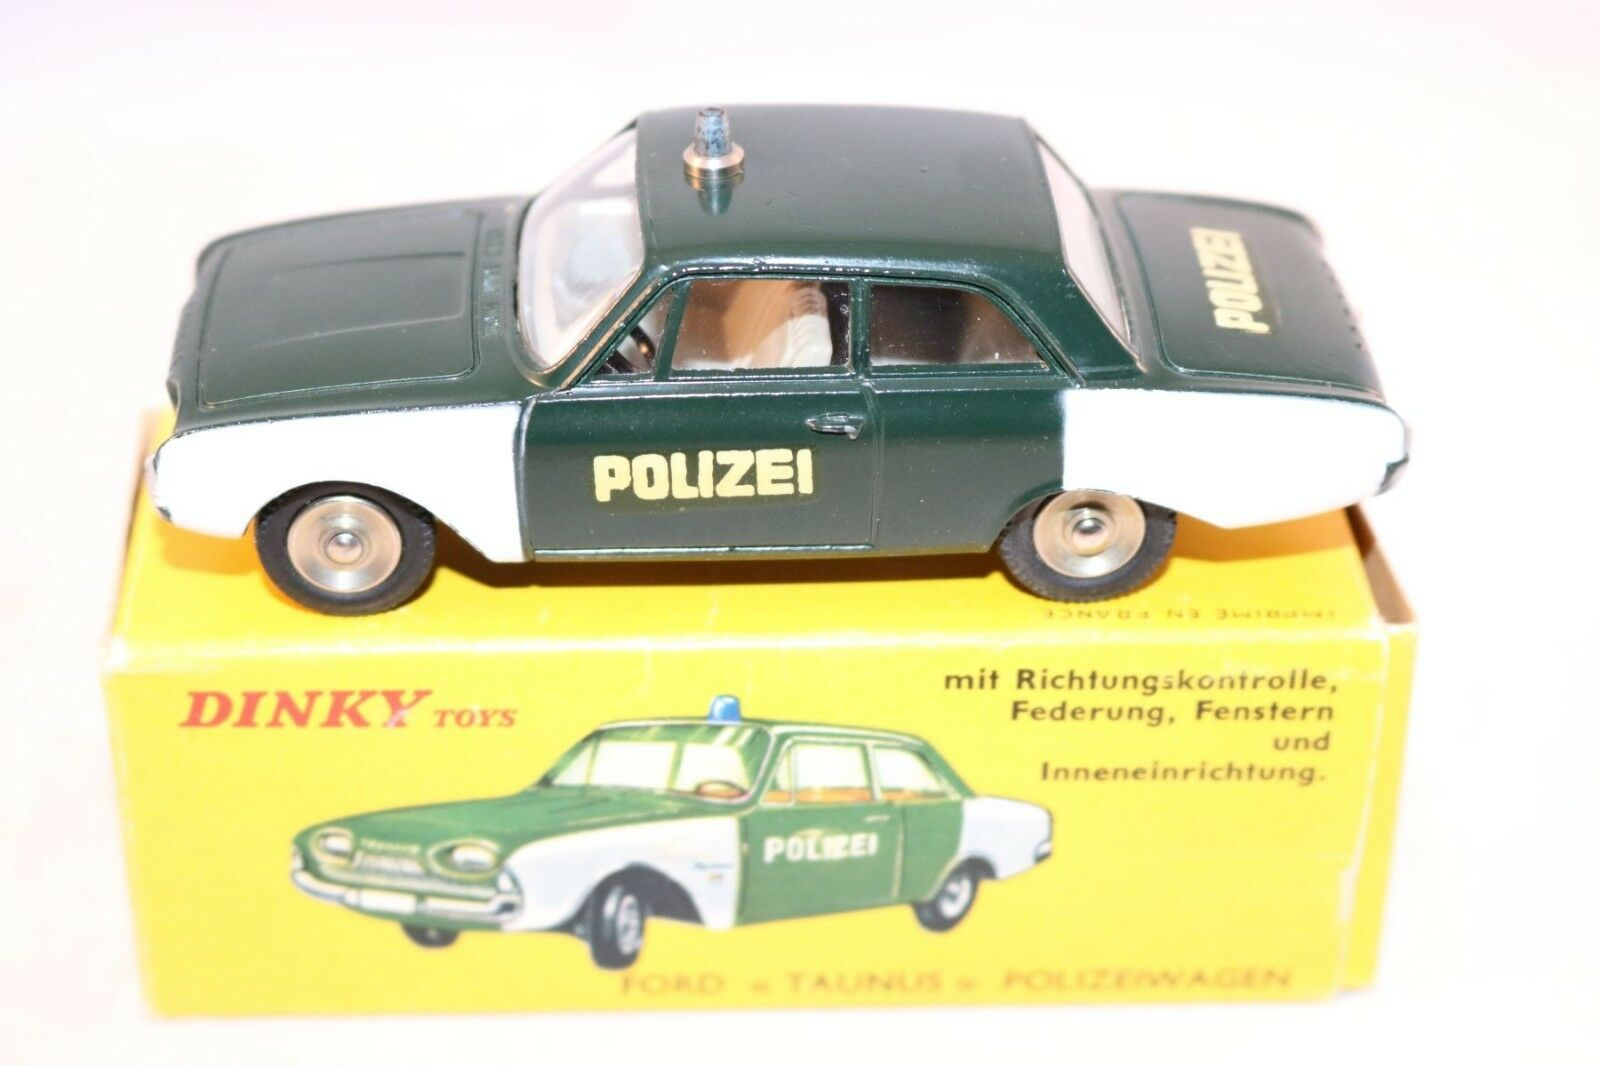 Dinky Toys 551 Ford Taunus  Polizeiwagen  in box super condition and super box